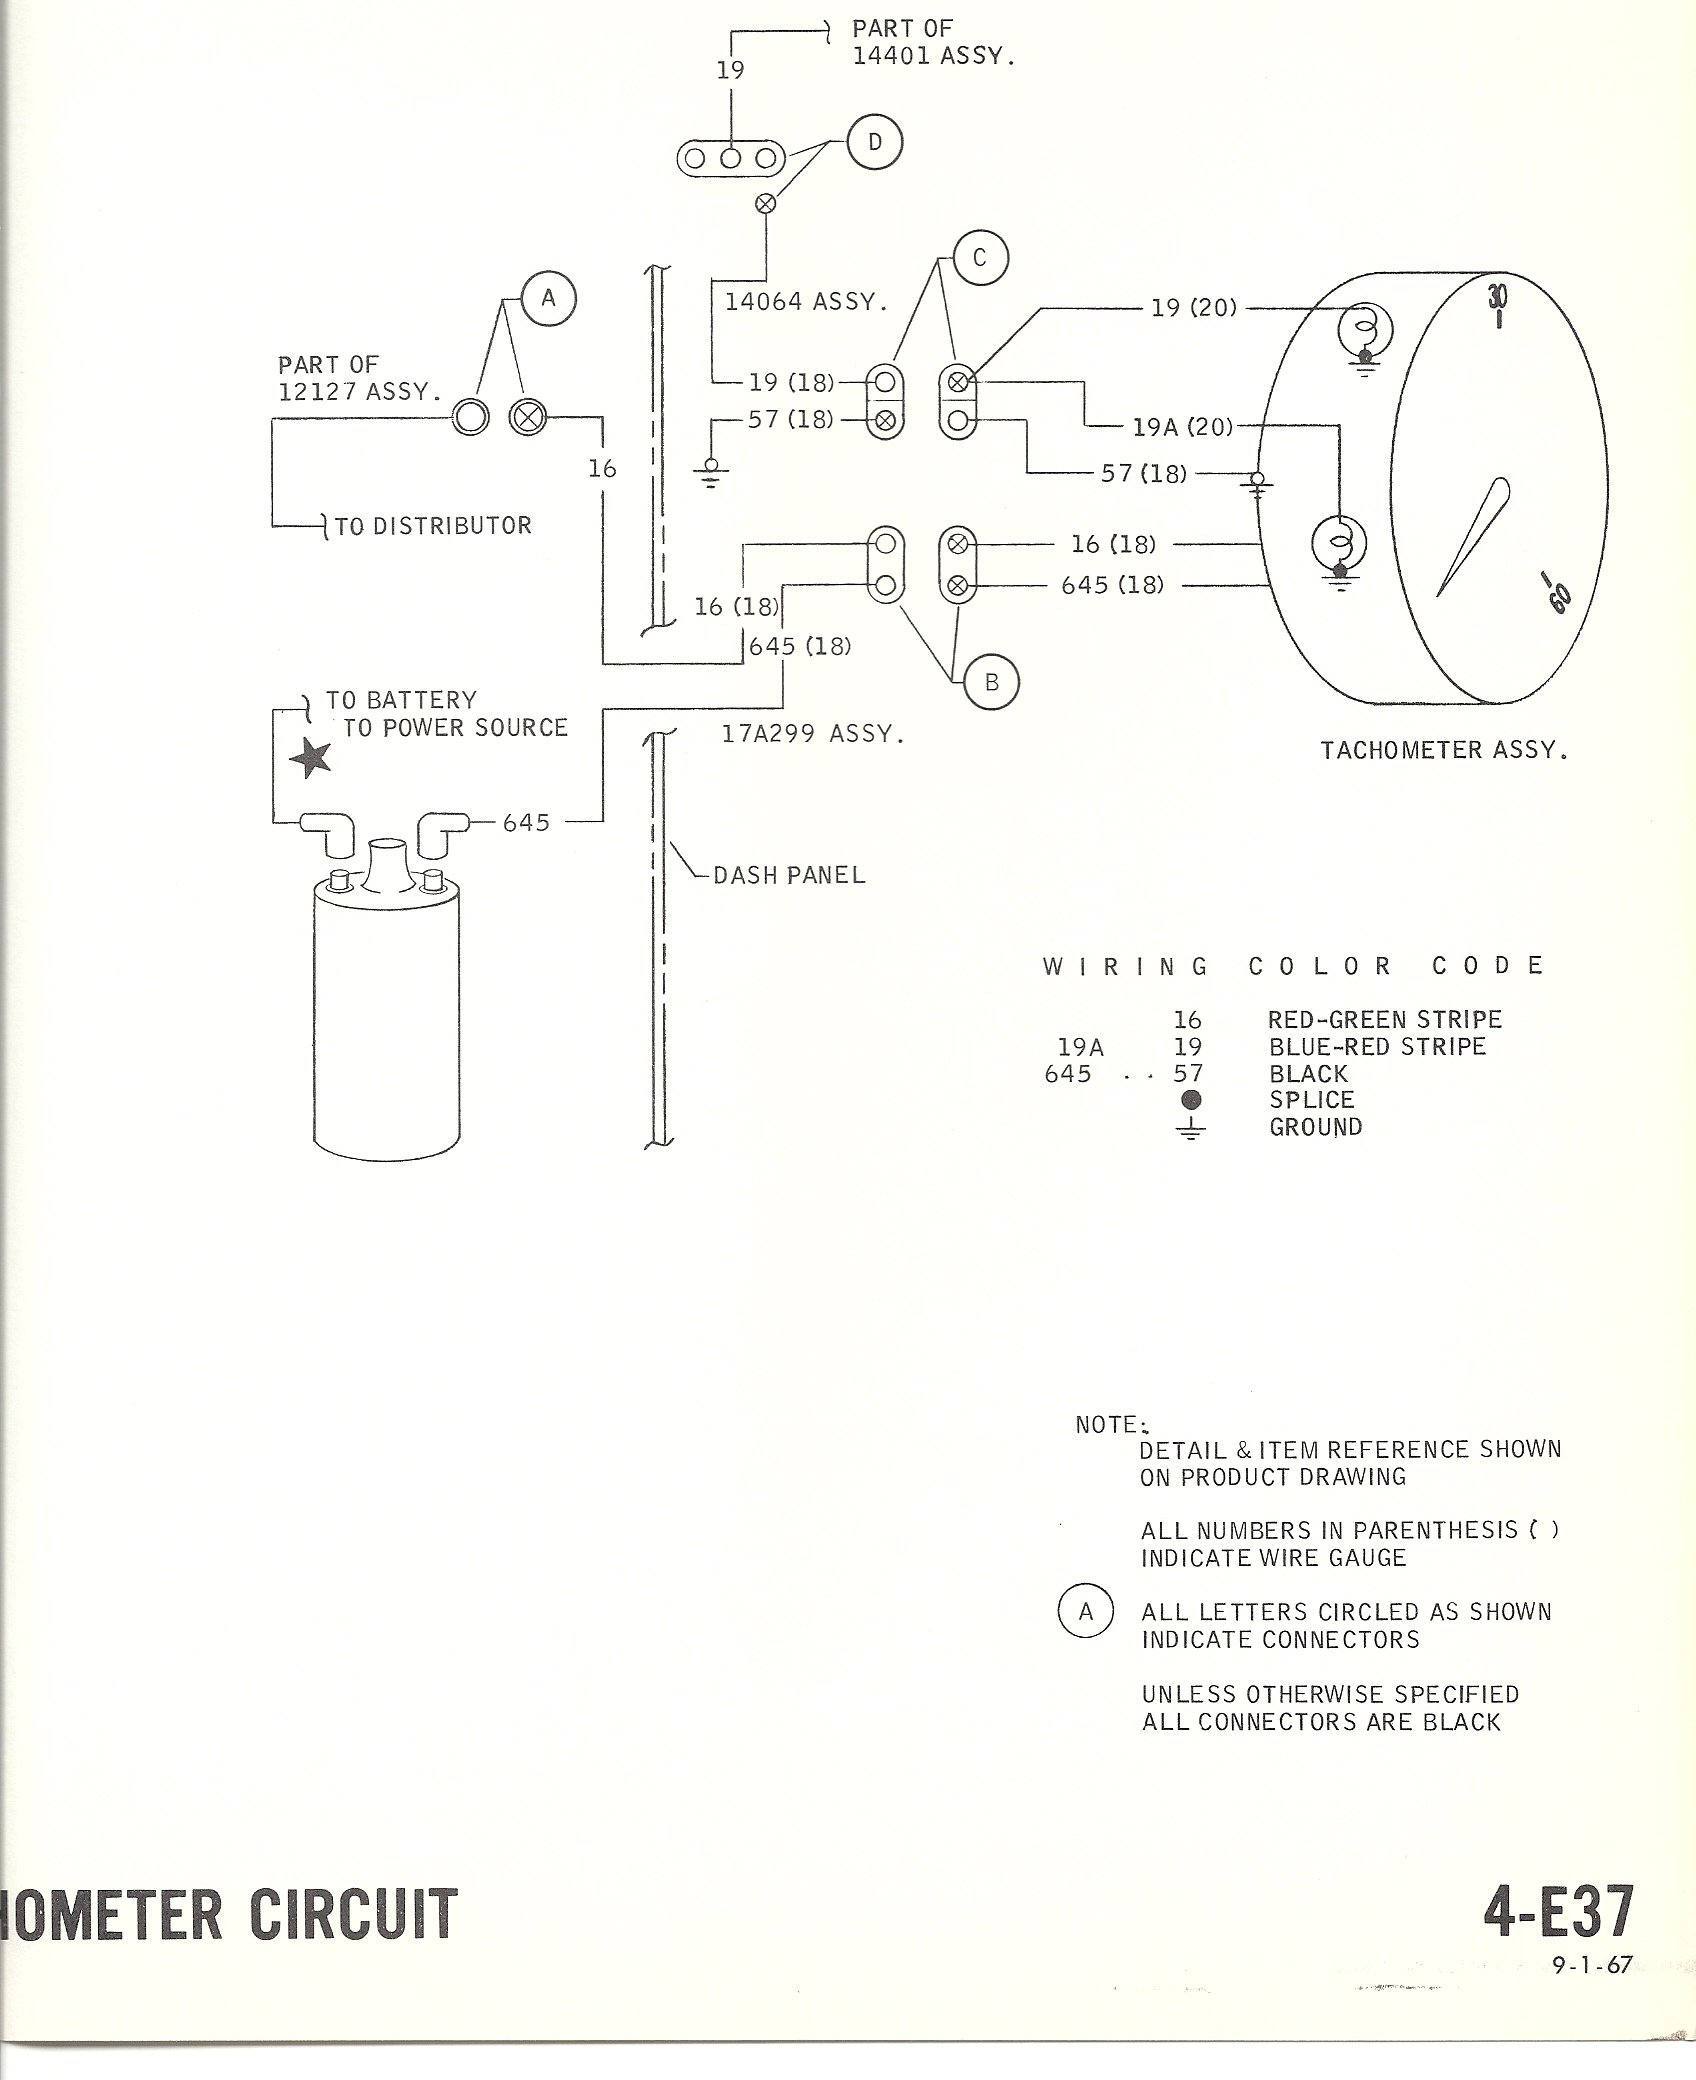 89255d1264897998 1968 mustang wiring diagrams tach please help tach wiring diagram 1968 mustang wiring diagrams with tach, please help ford mustang  at gsmx.co